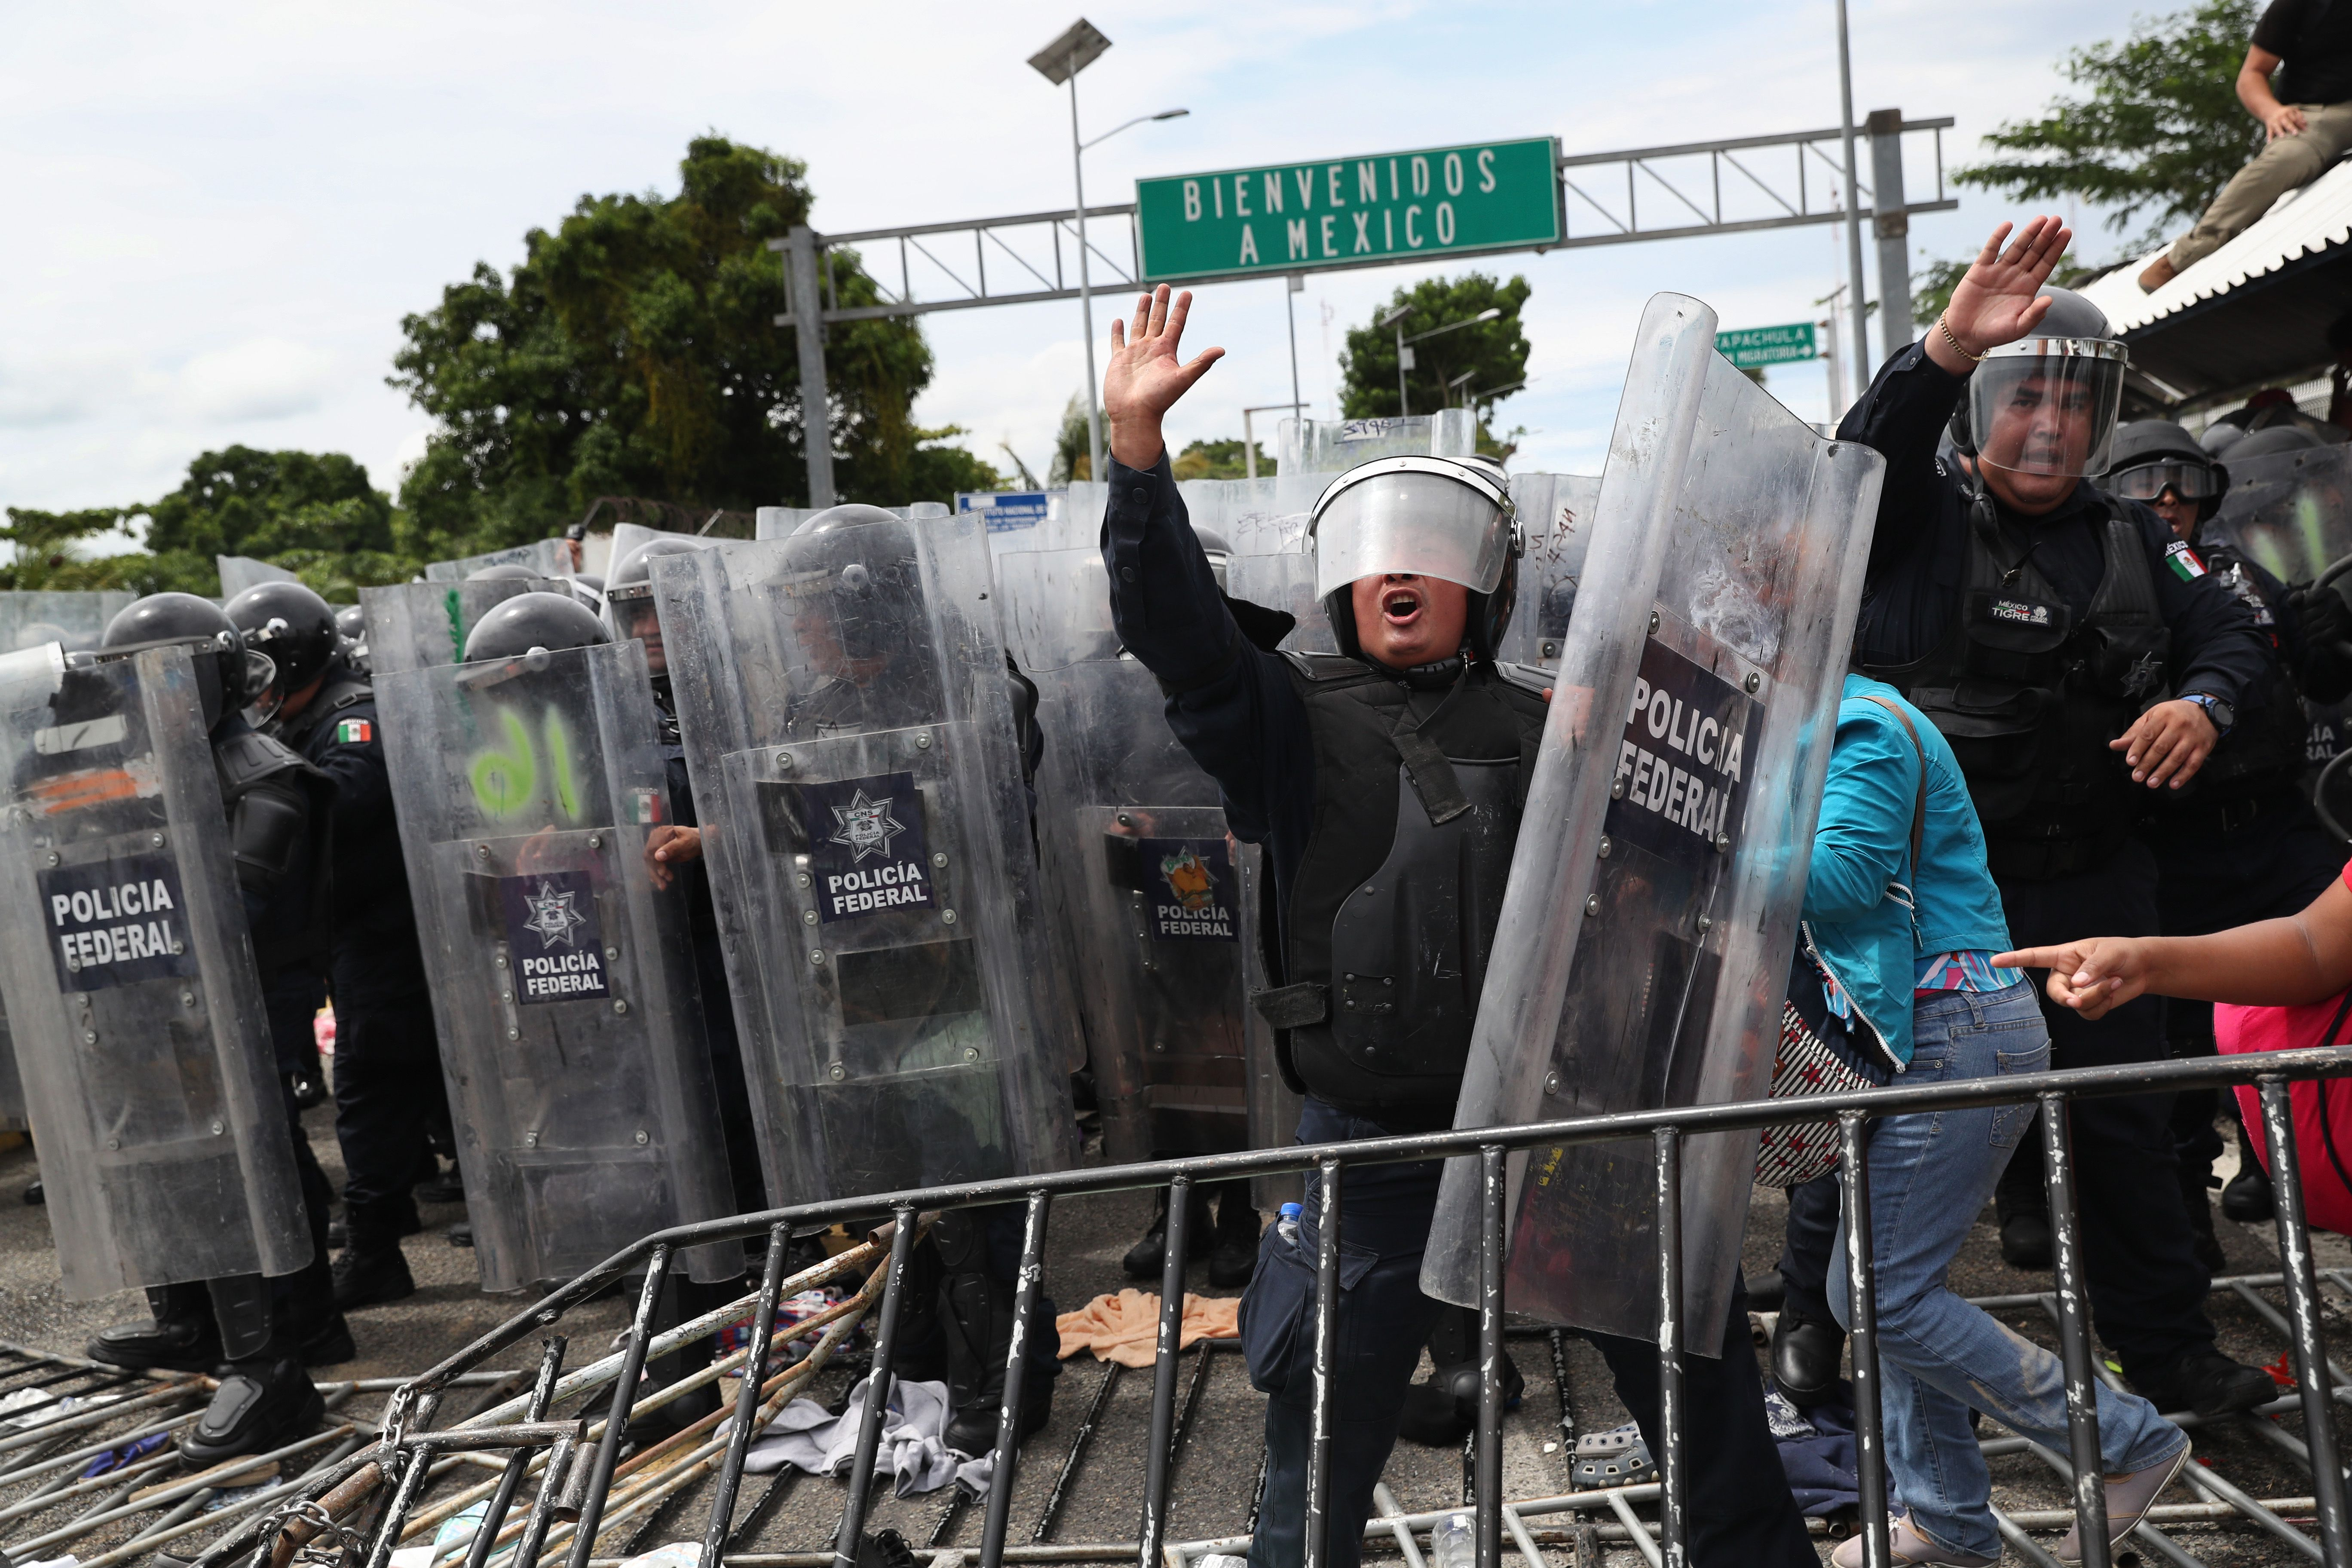 Mexican authorities holding riot shields